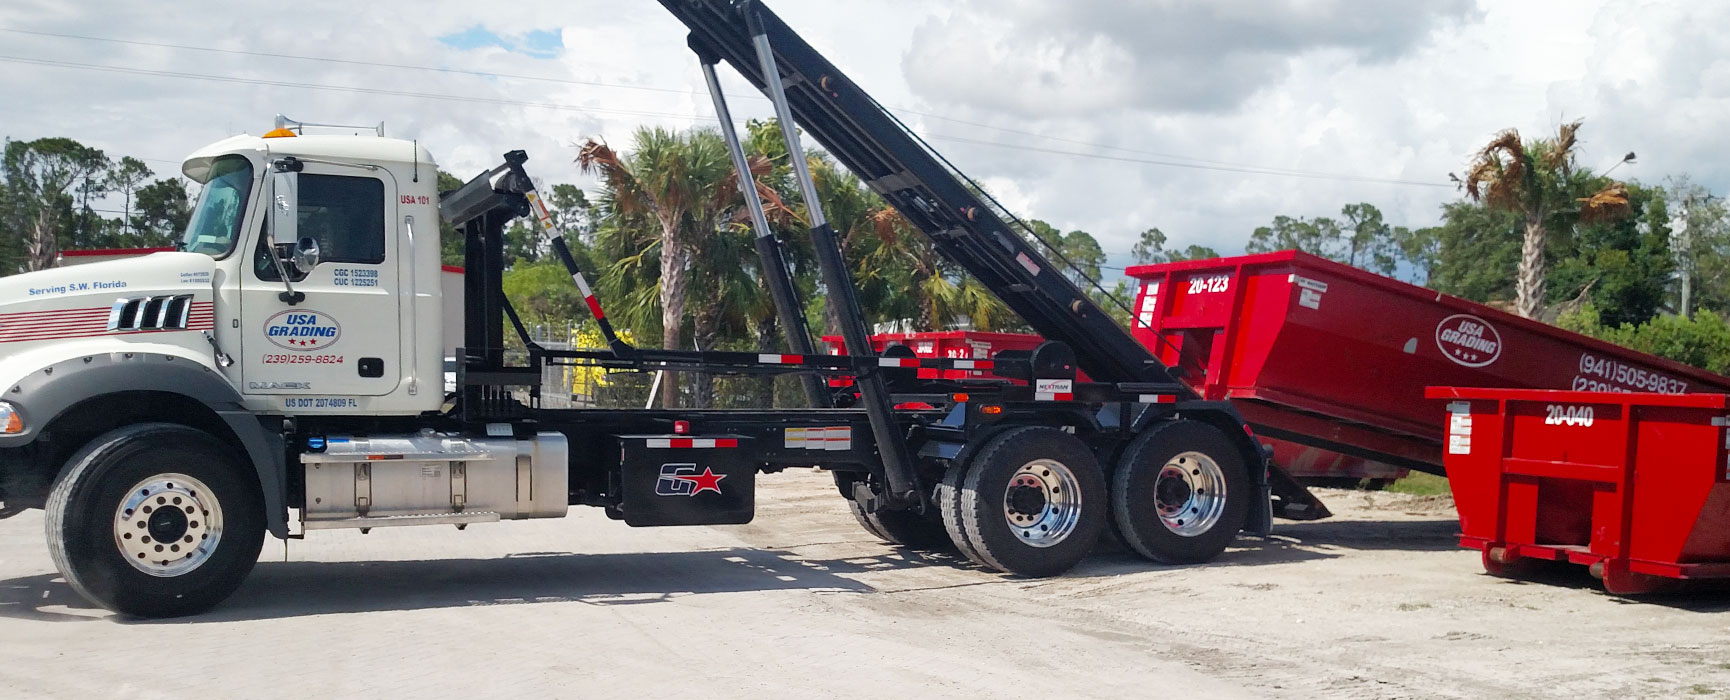 USA Grading, Inc. trucking and hauling dropping off a roll off dumpster rental in Southwest Florida